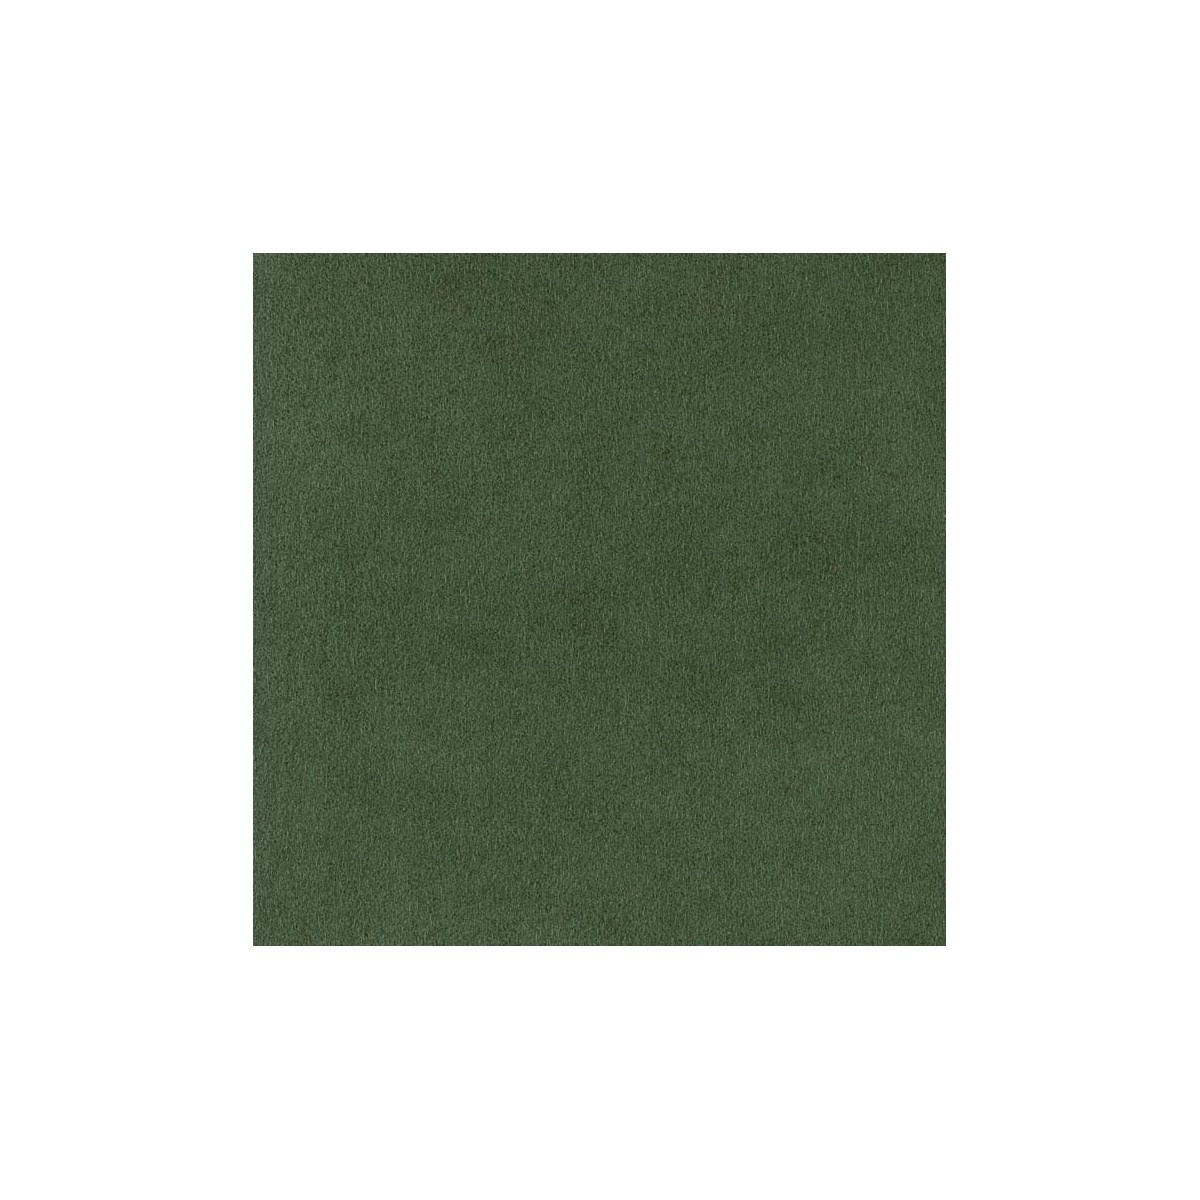 Ultrasuede TOPIARY 225 x 230 mm 1pz